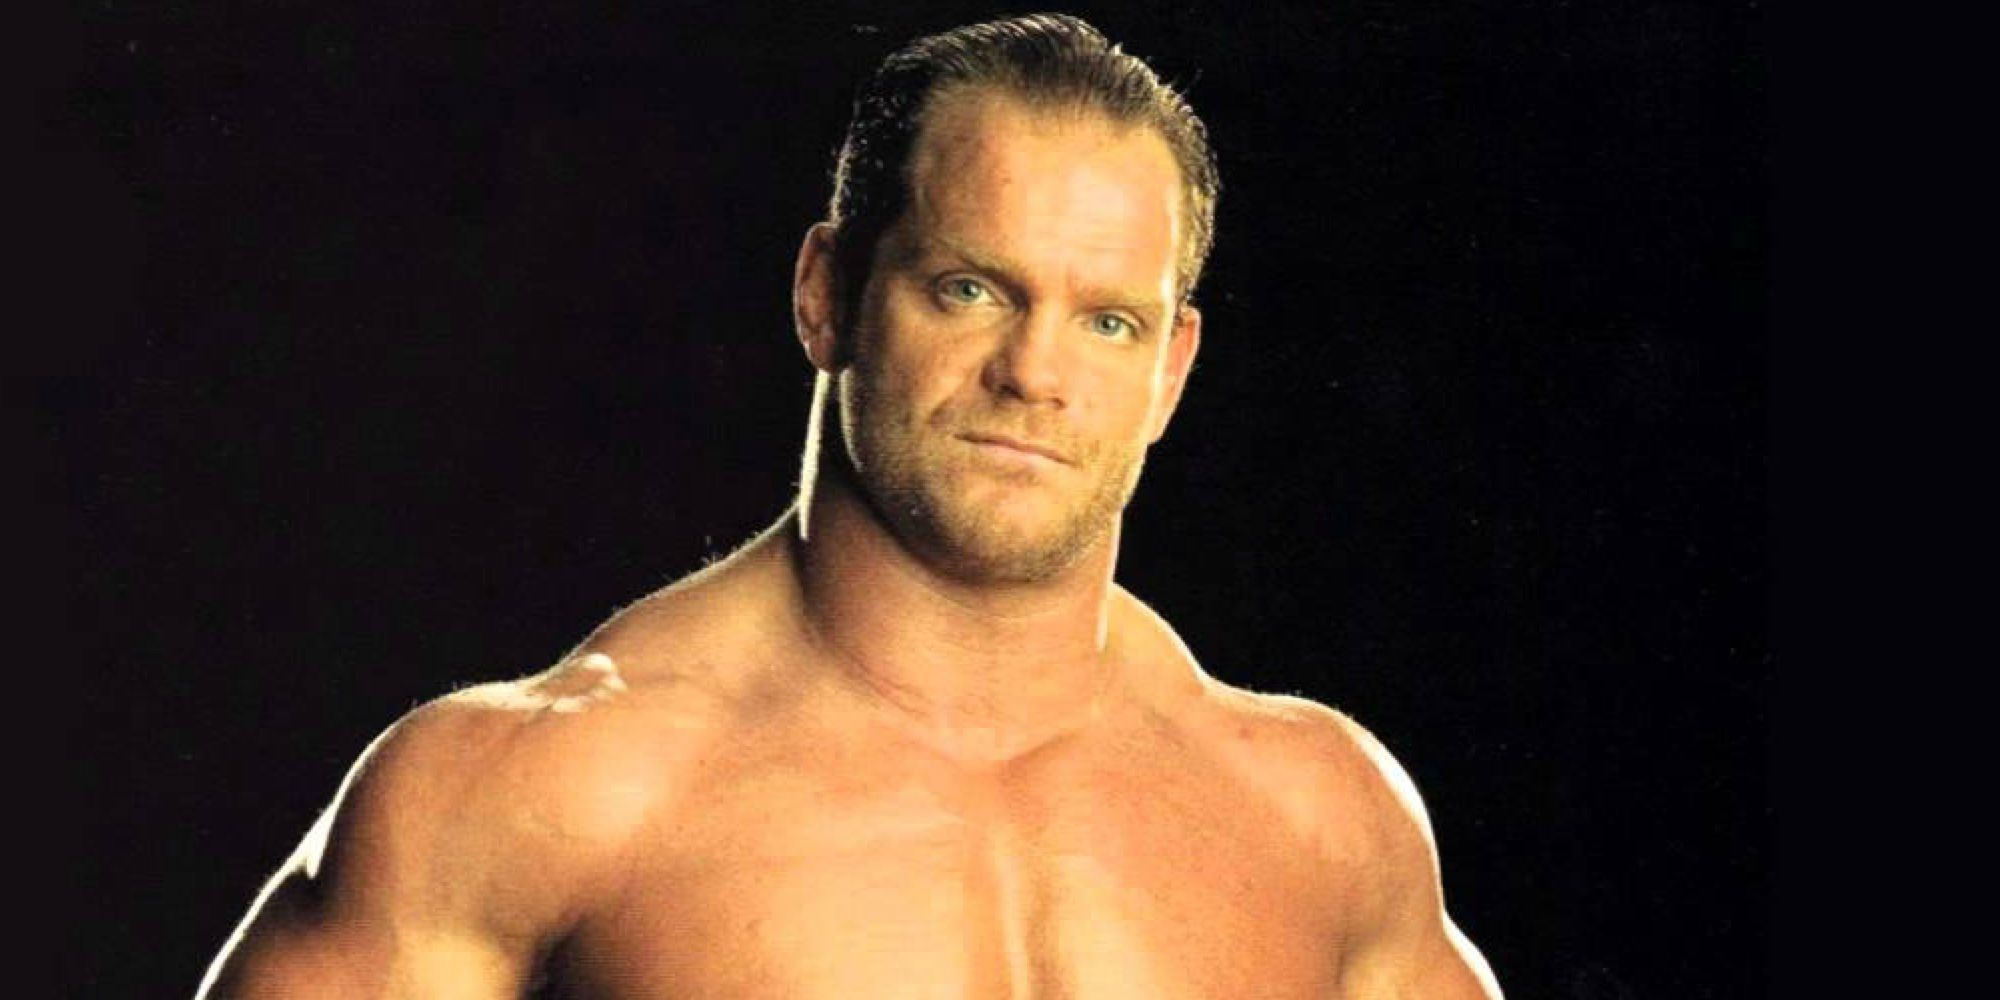 Chris Benoit Should Be in WWE Hall of Fame, Says Vickie Guerrero